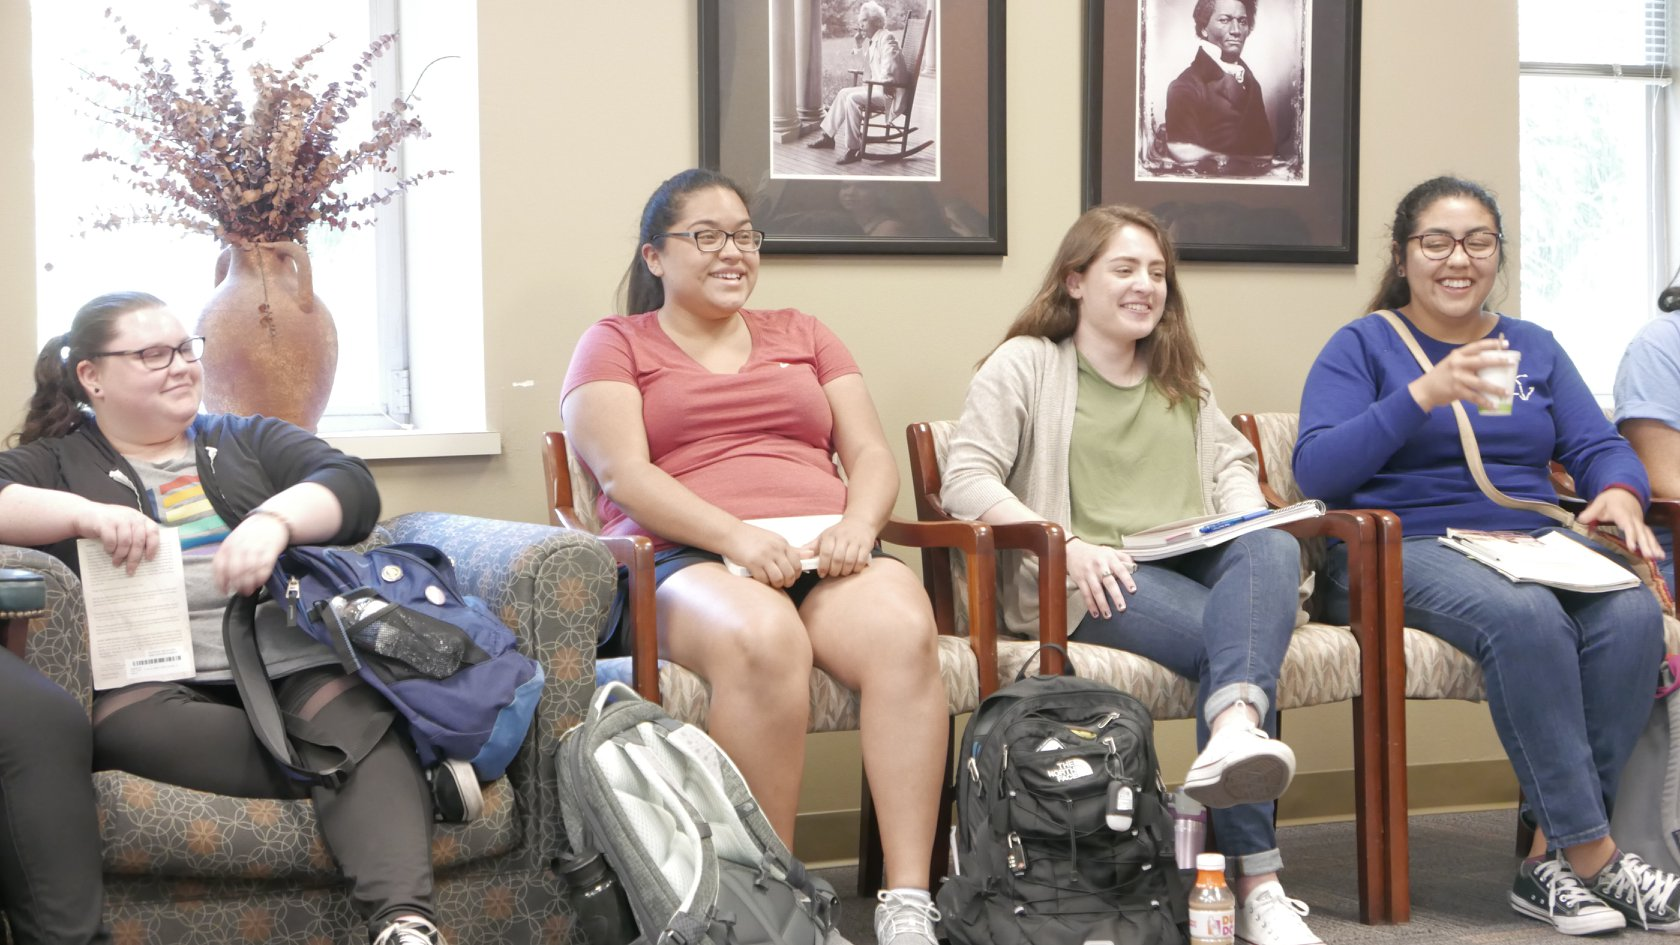 Four students seated around the edge of a large conference room, laughing and smiling widely at someone speaking to the group (out of frame).